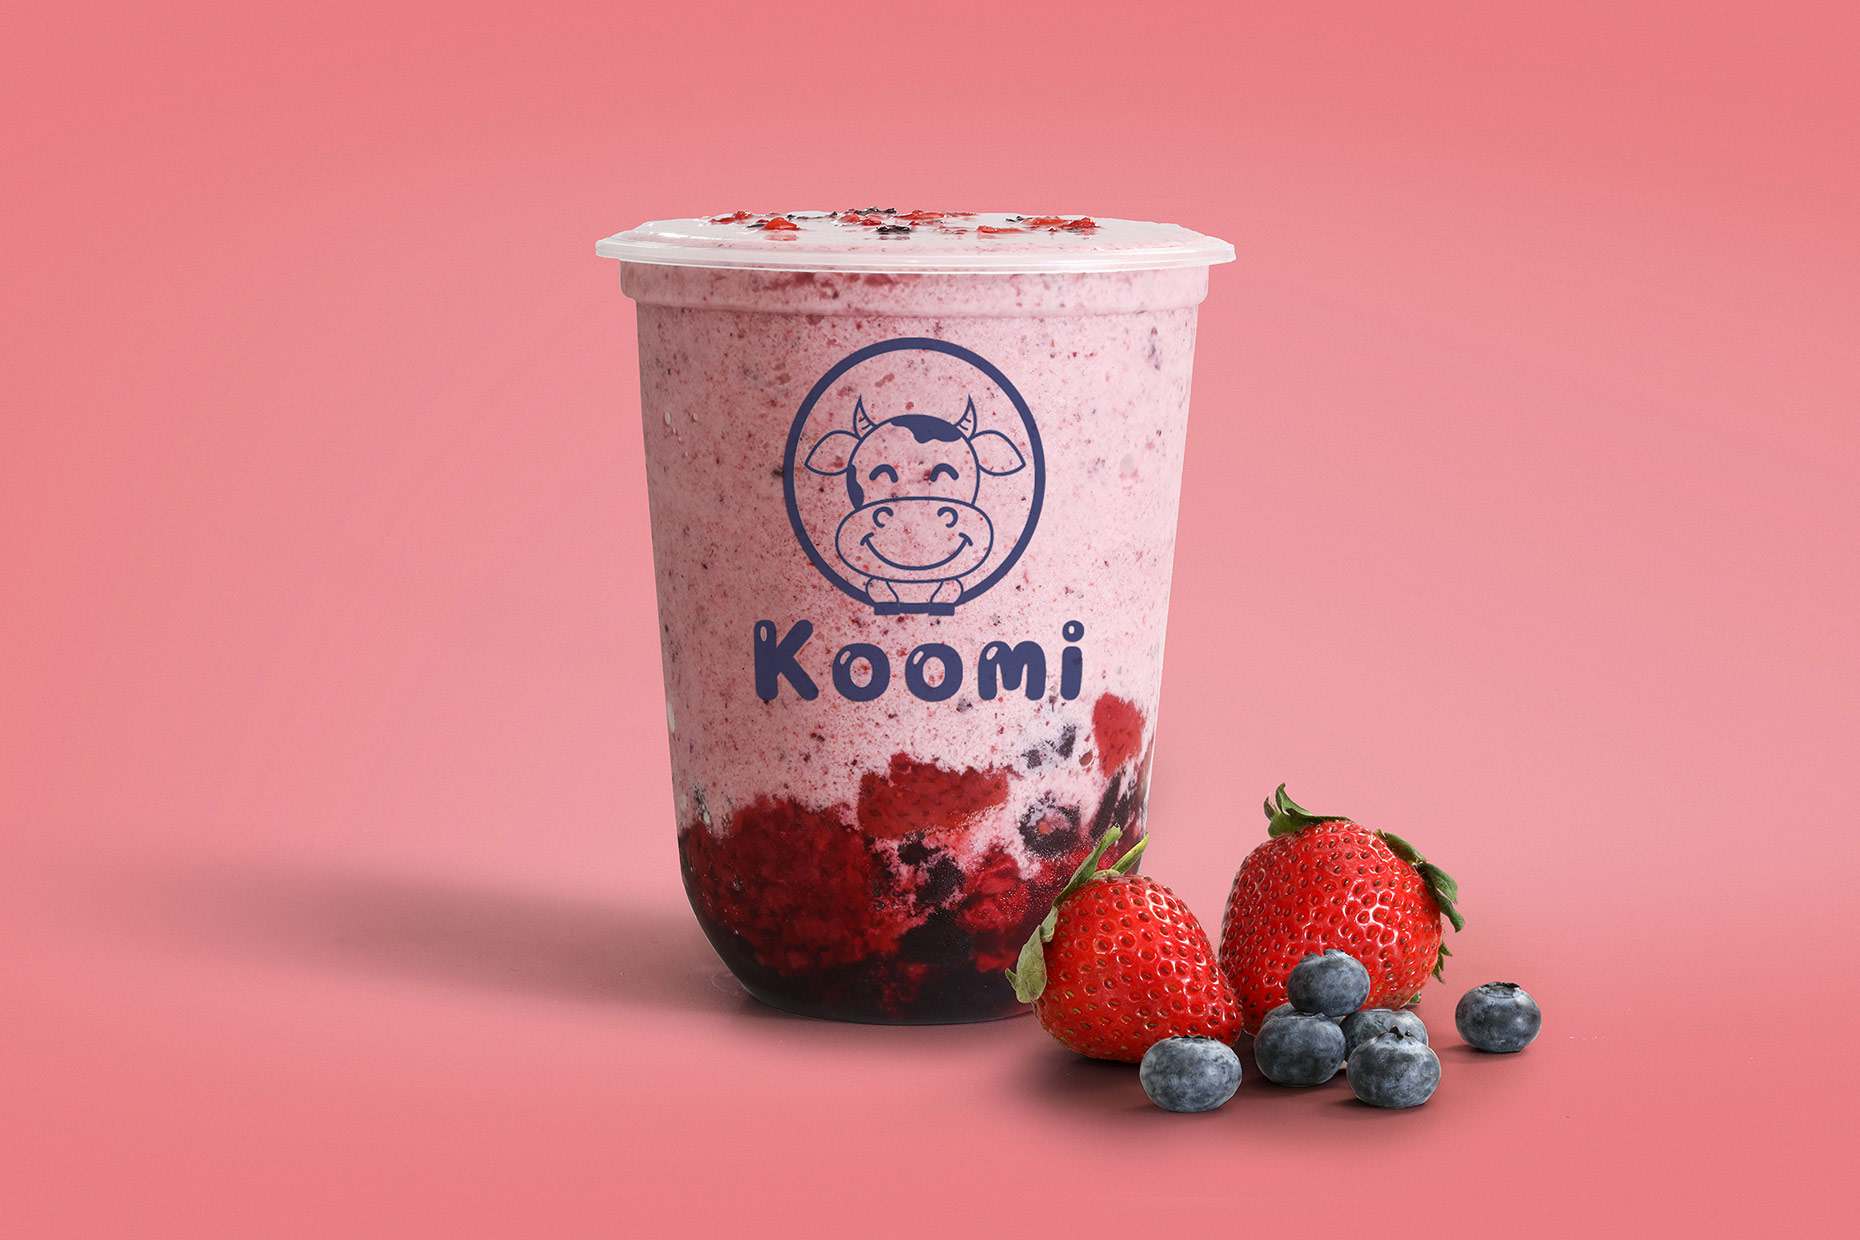 koomi-yogurt-drink